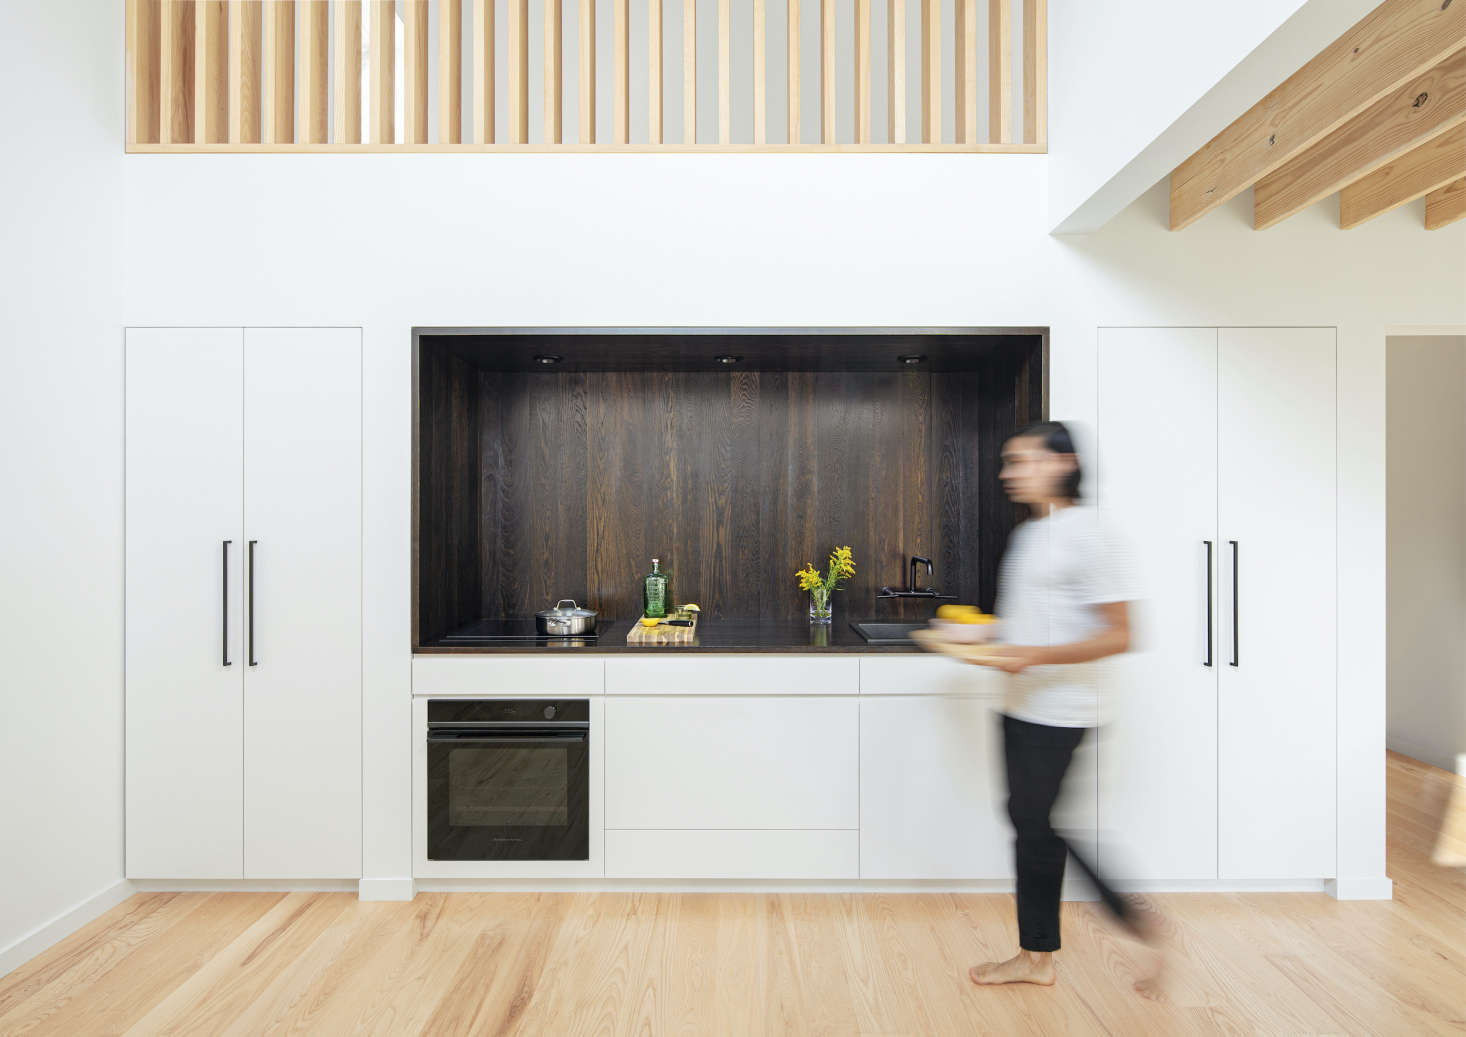 """A fleet of now-you-see-them, now-you-don't Integrated appliances are the perfect fit for a small-space kitchen by architect Landon Brown, including an Integrated CoolDrawer Multi-Temperature Drawer, a """" Integrated Wall Oven, and a """" Four-Zone Induction Cooktop. Photograph by Mark Wickens."""